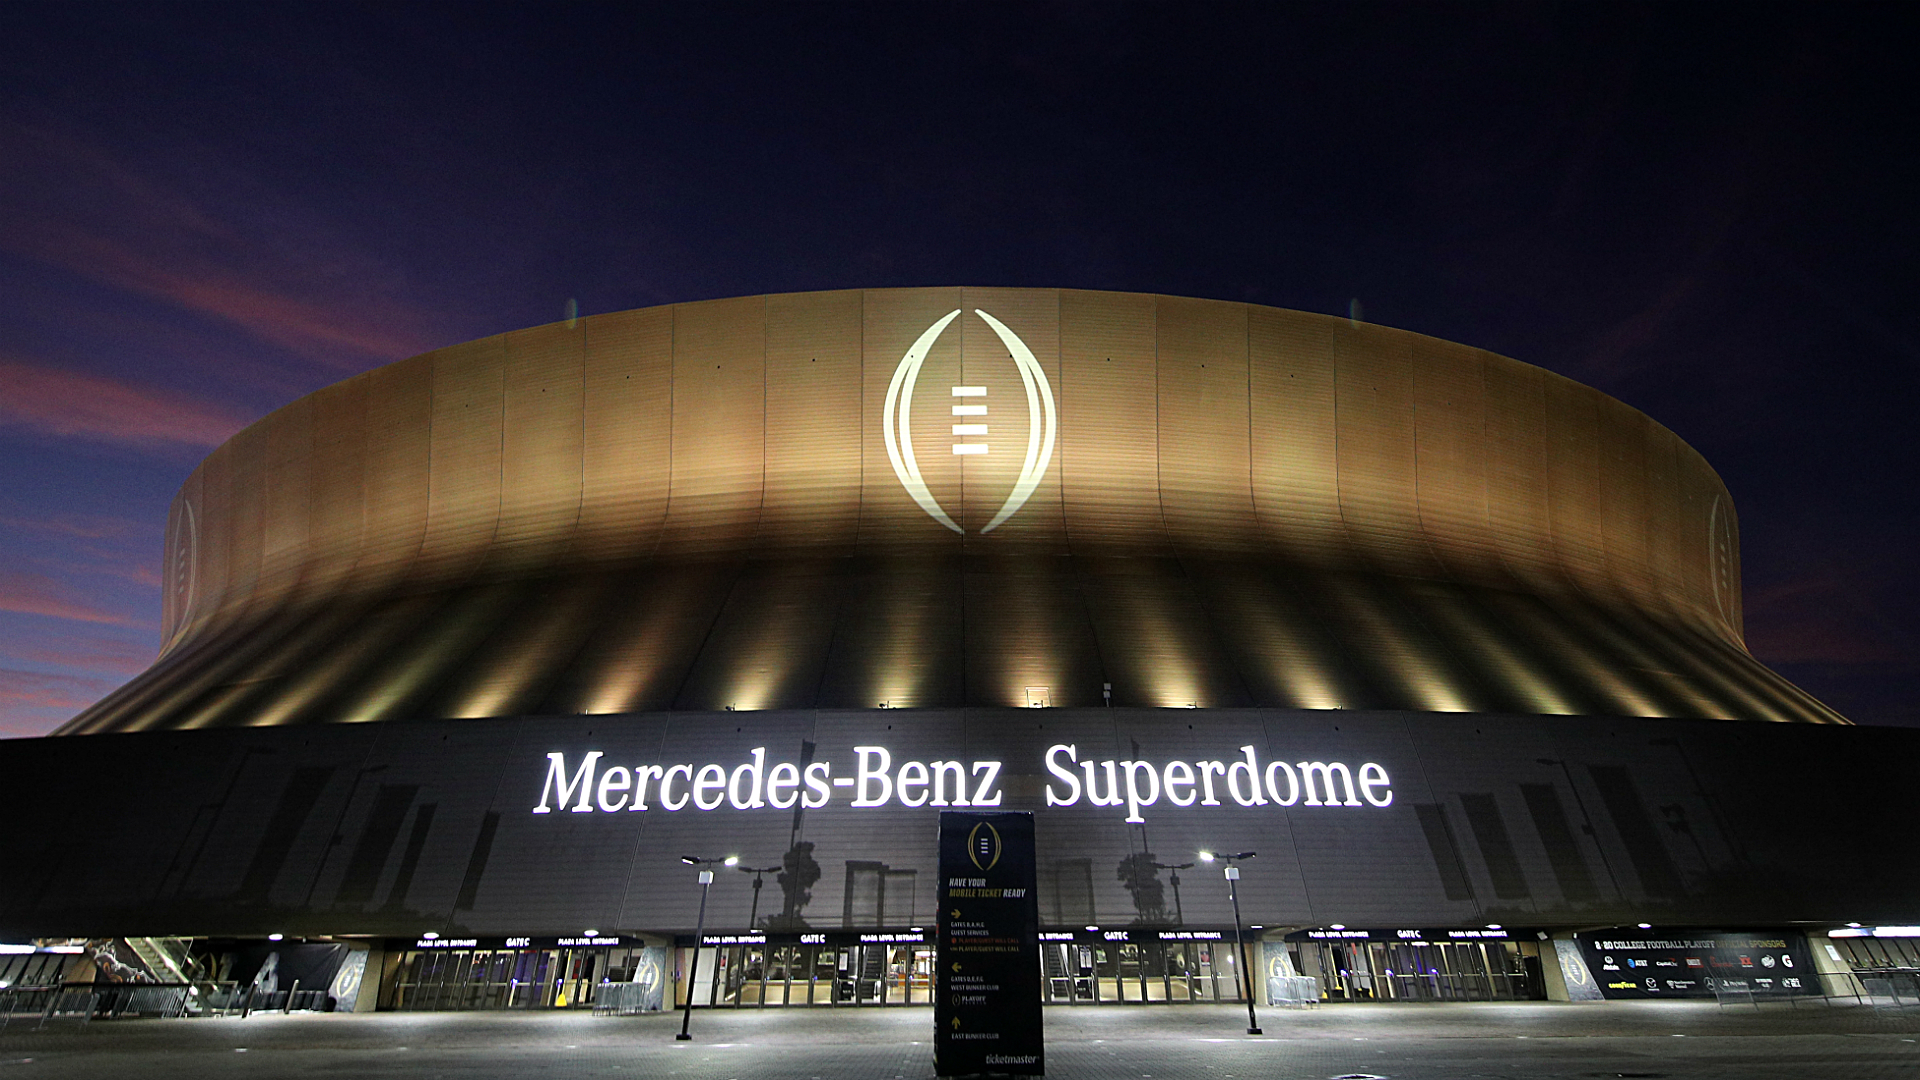 Porn site goes after New Orleans Superdome naming rights with a great pitch